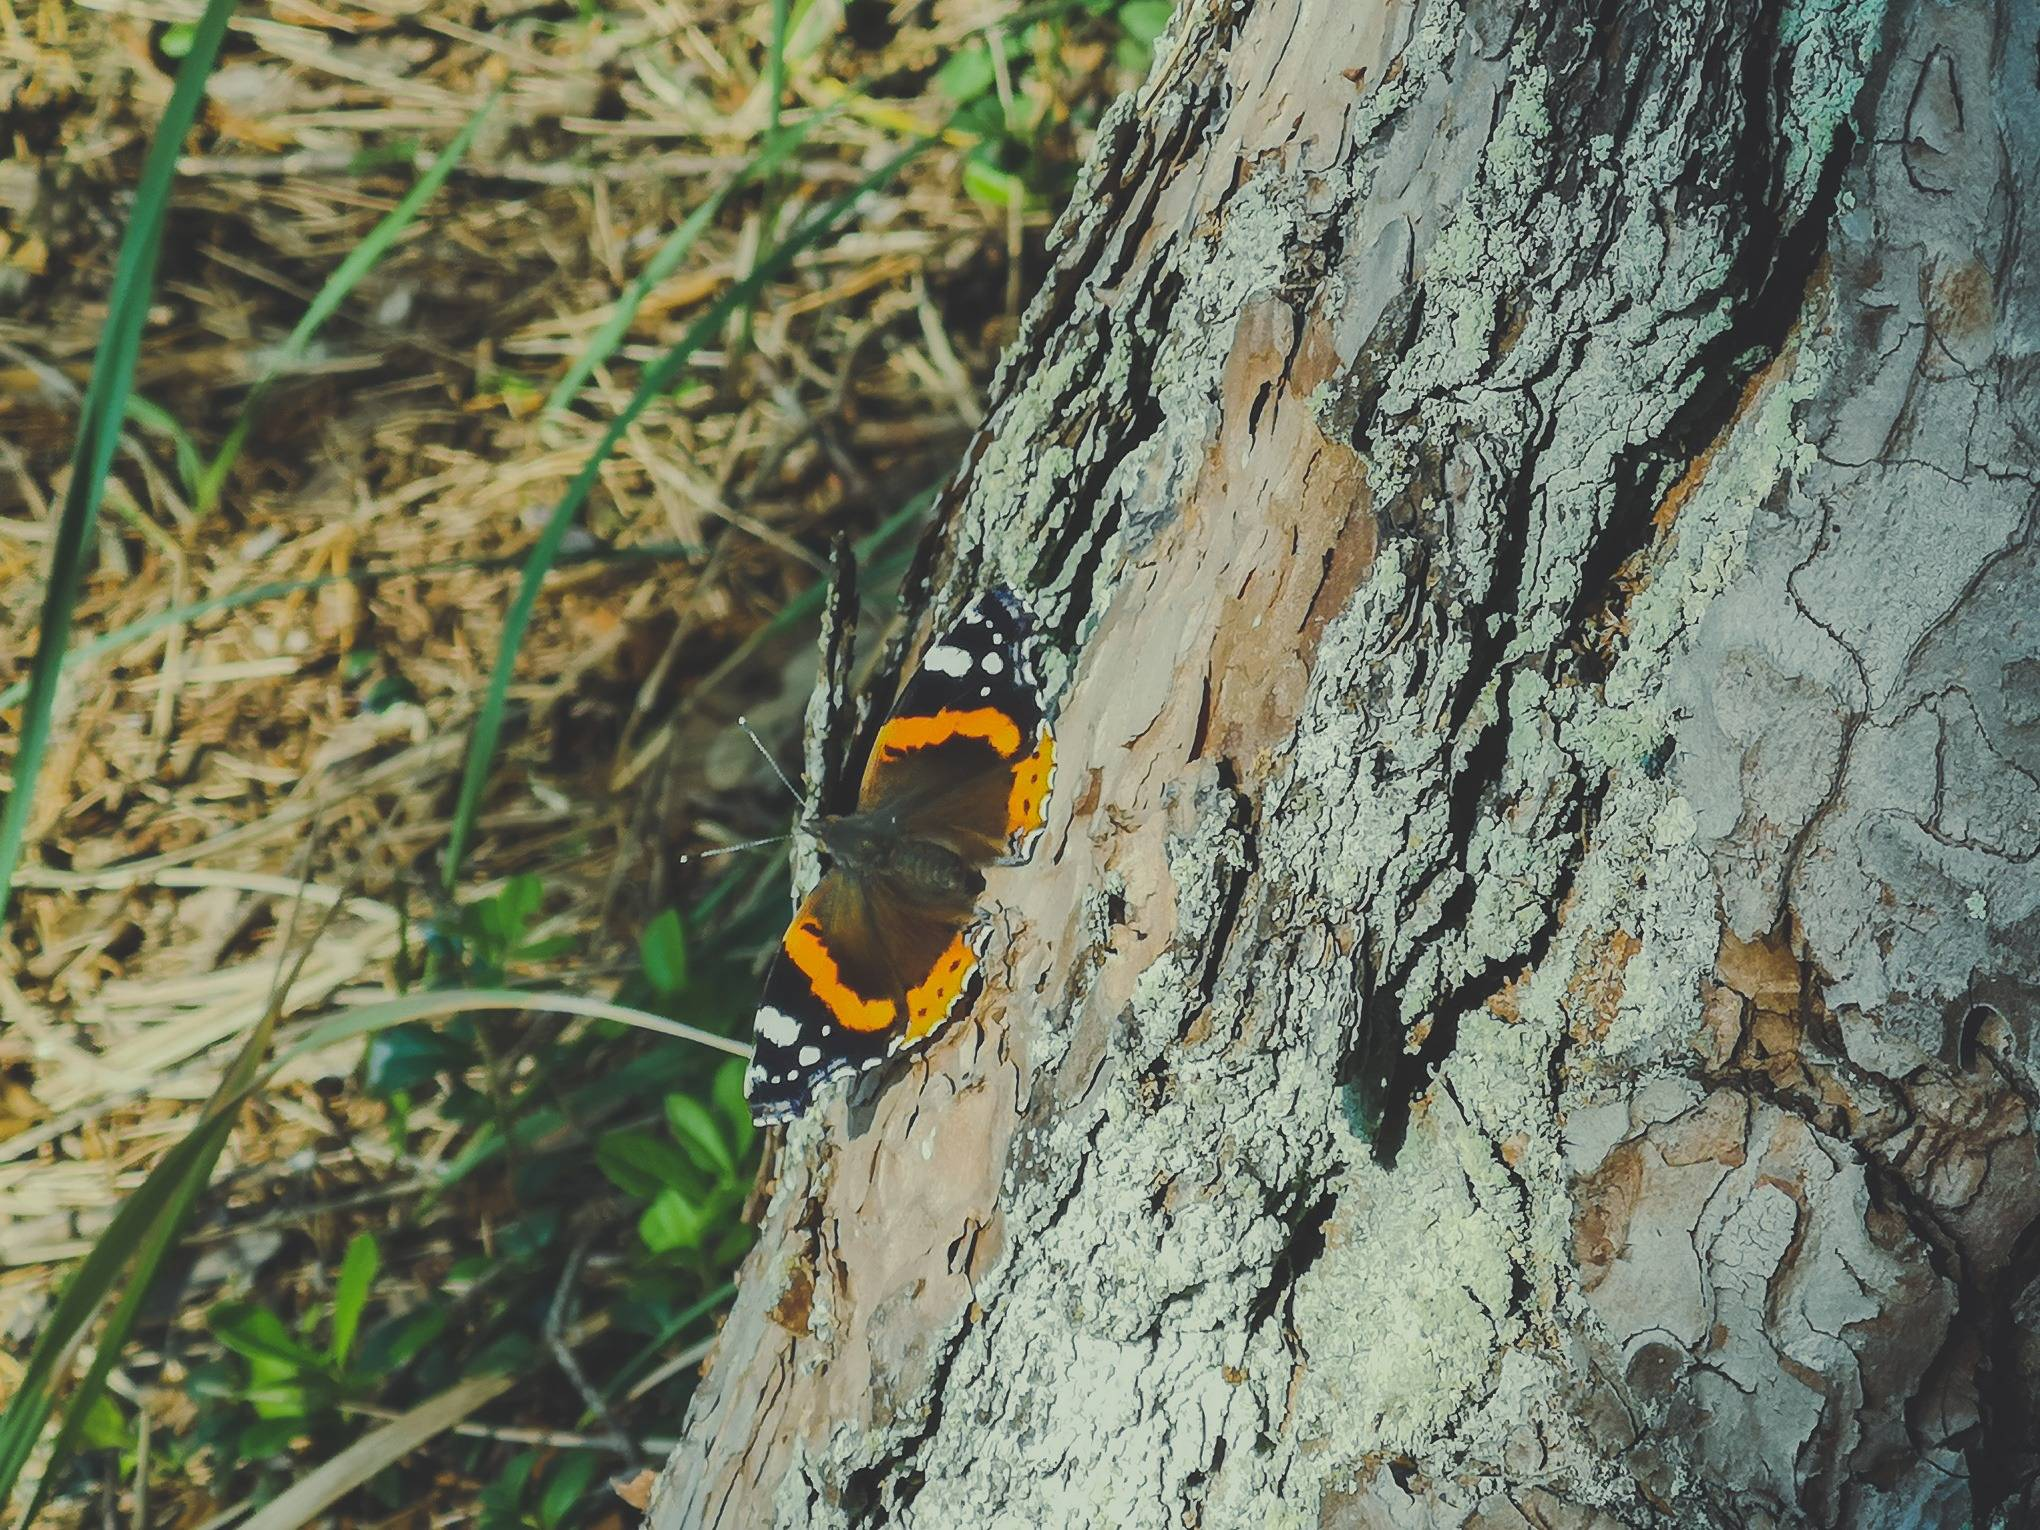 Red Admiral in Labanoras Regional Park, Lithuania. Photo Alis Monte [CC BY-SA 4.0], via Connecting the Dots